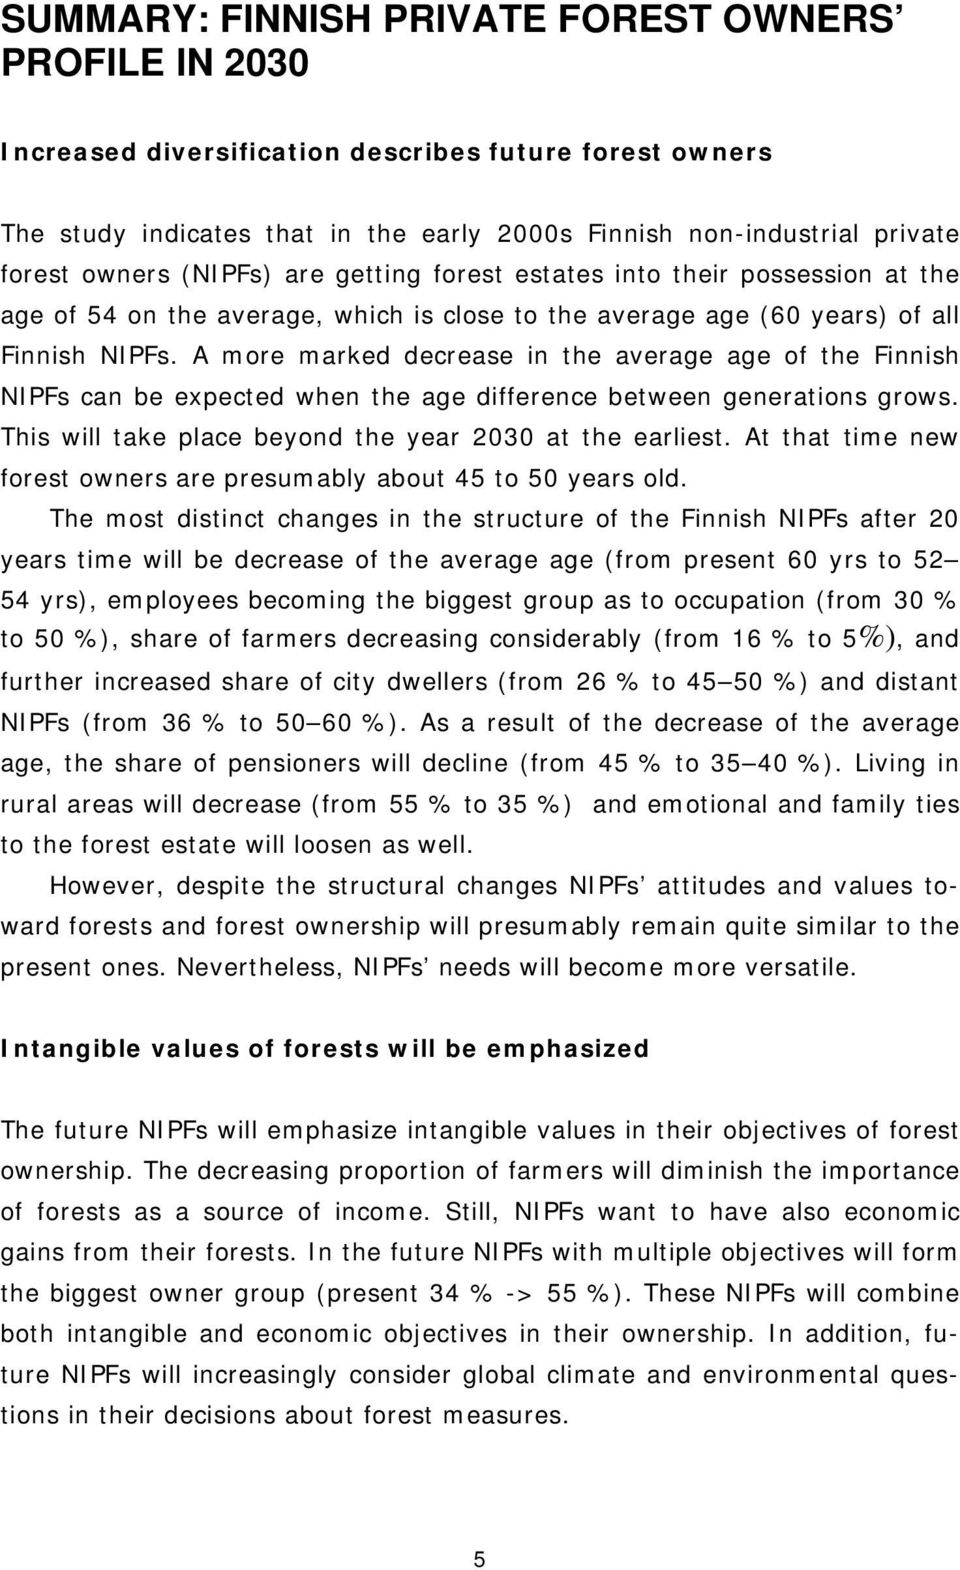 A more marked decrease in the average age of the Finnish NIPFs can be expected when the age difference between generations grows. This will take place beyond the year 2030 at the earliest.